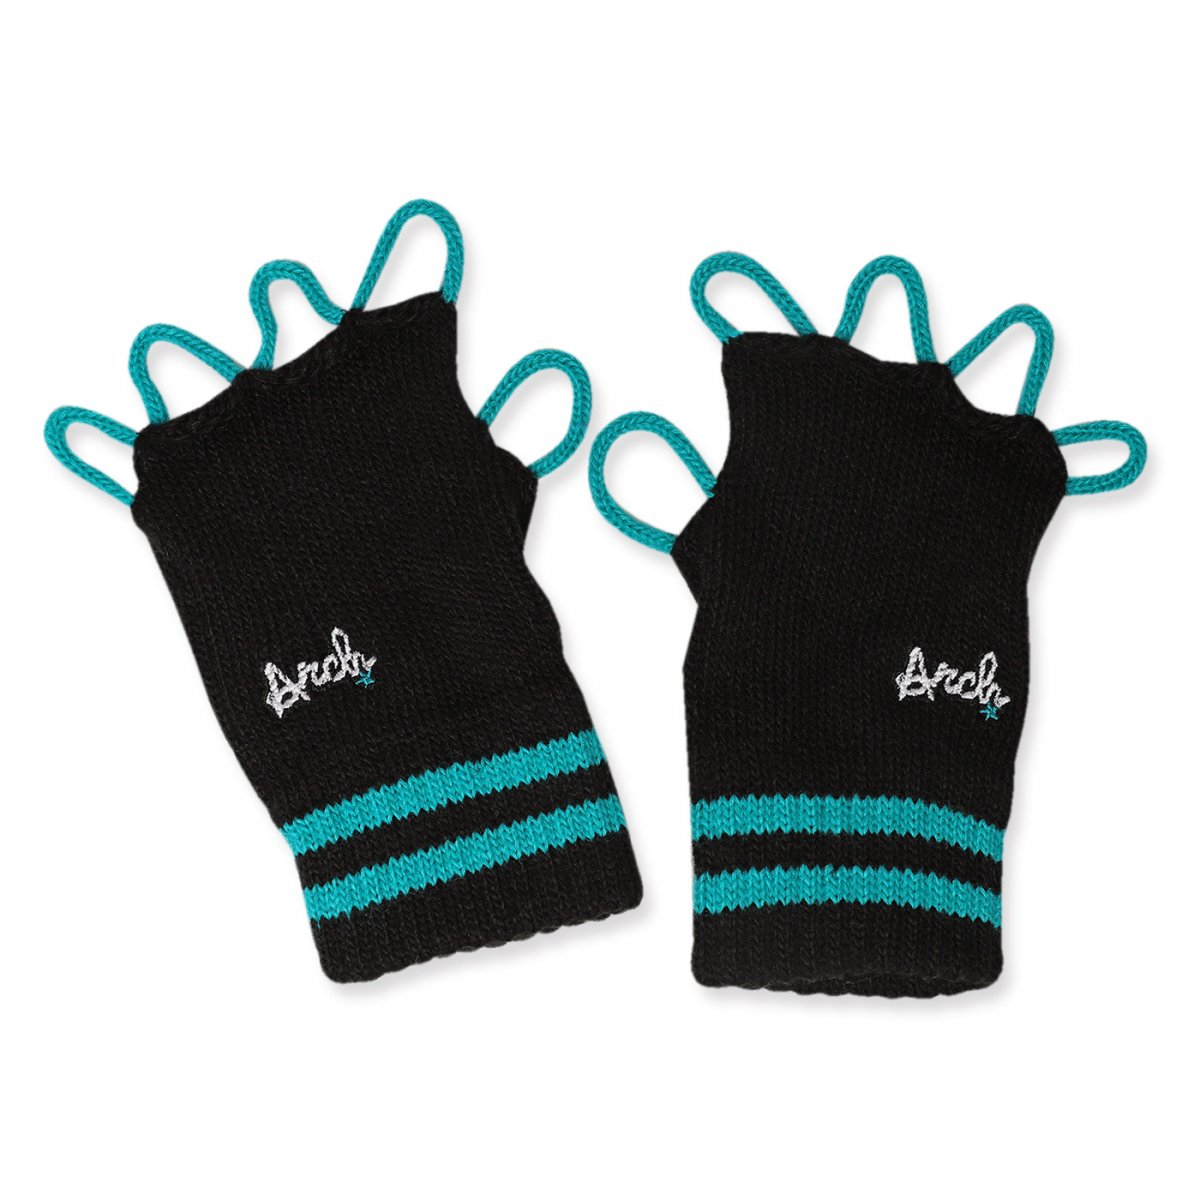 line crew glove【black/mint】